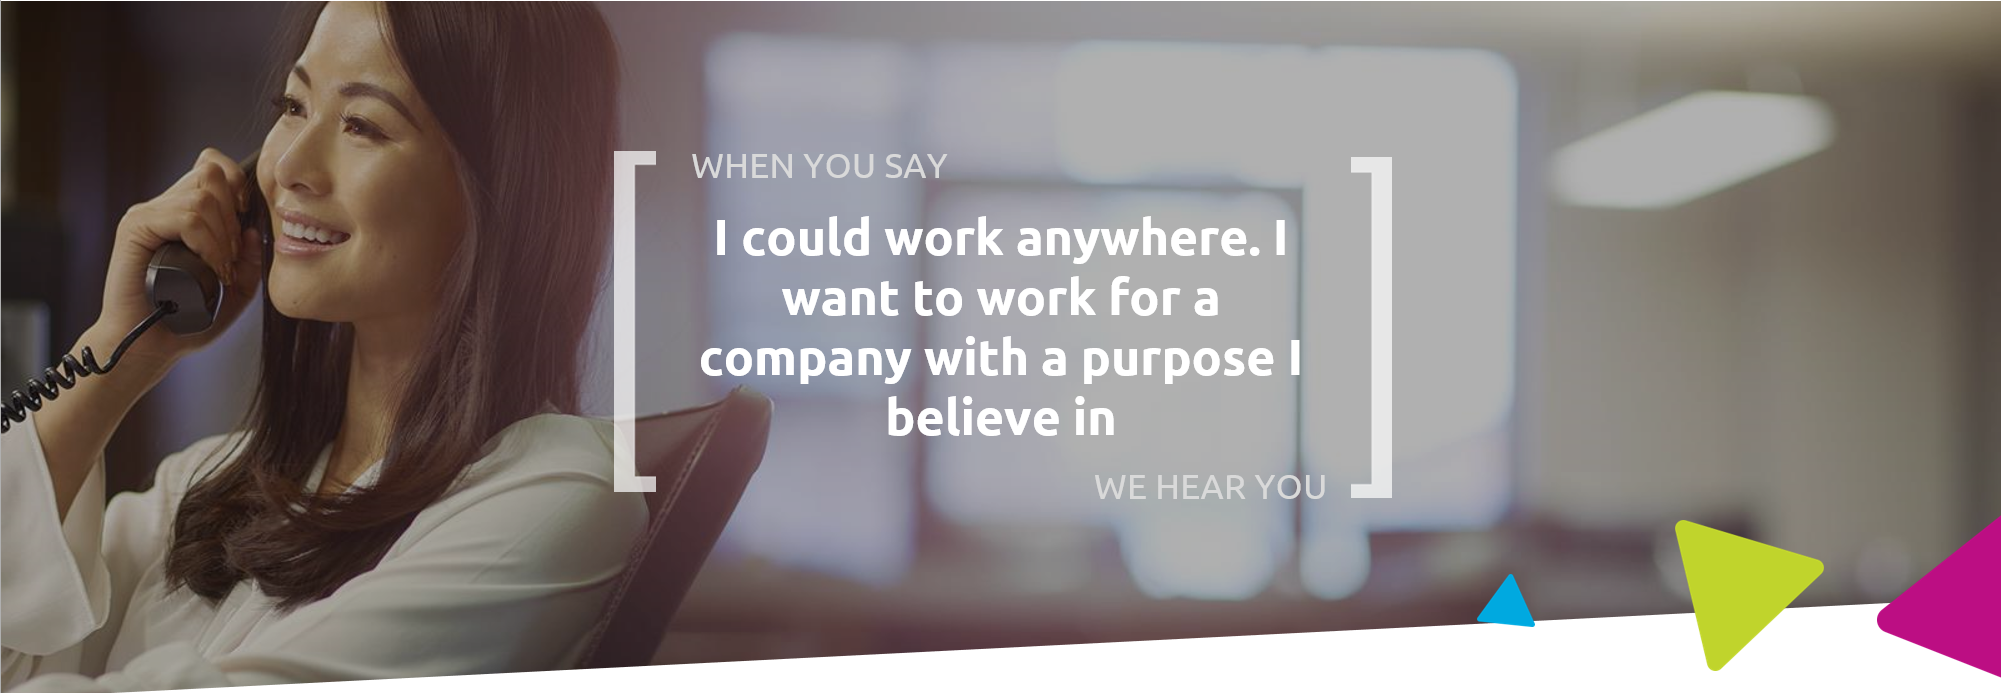 When you say I could work anywhere. I want to work for a company with a purpose I believe in, we hear you